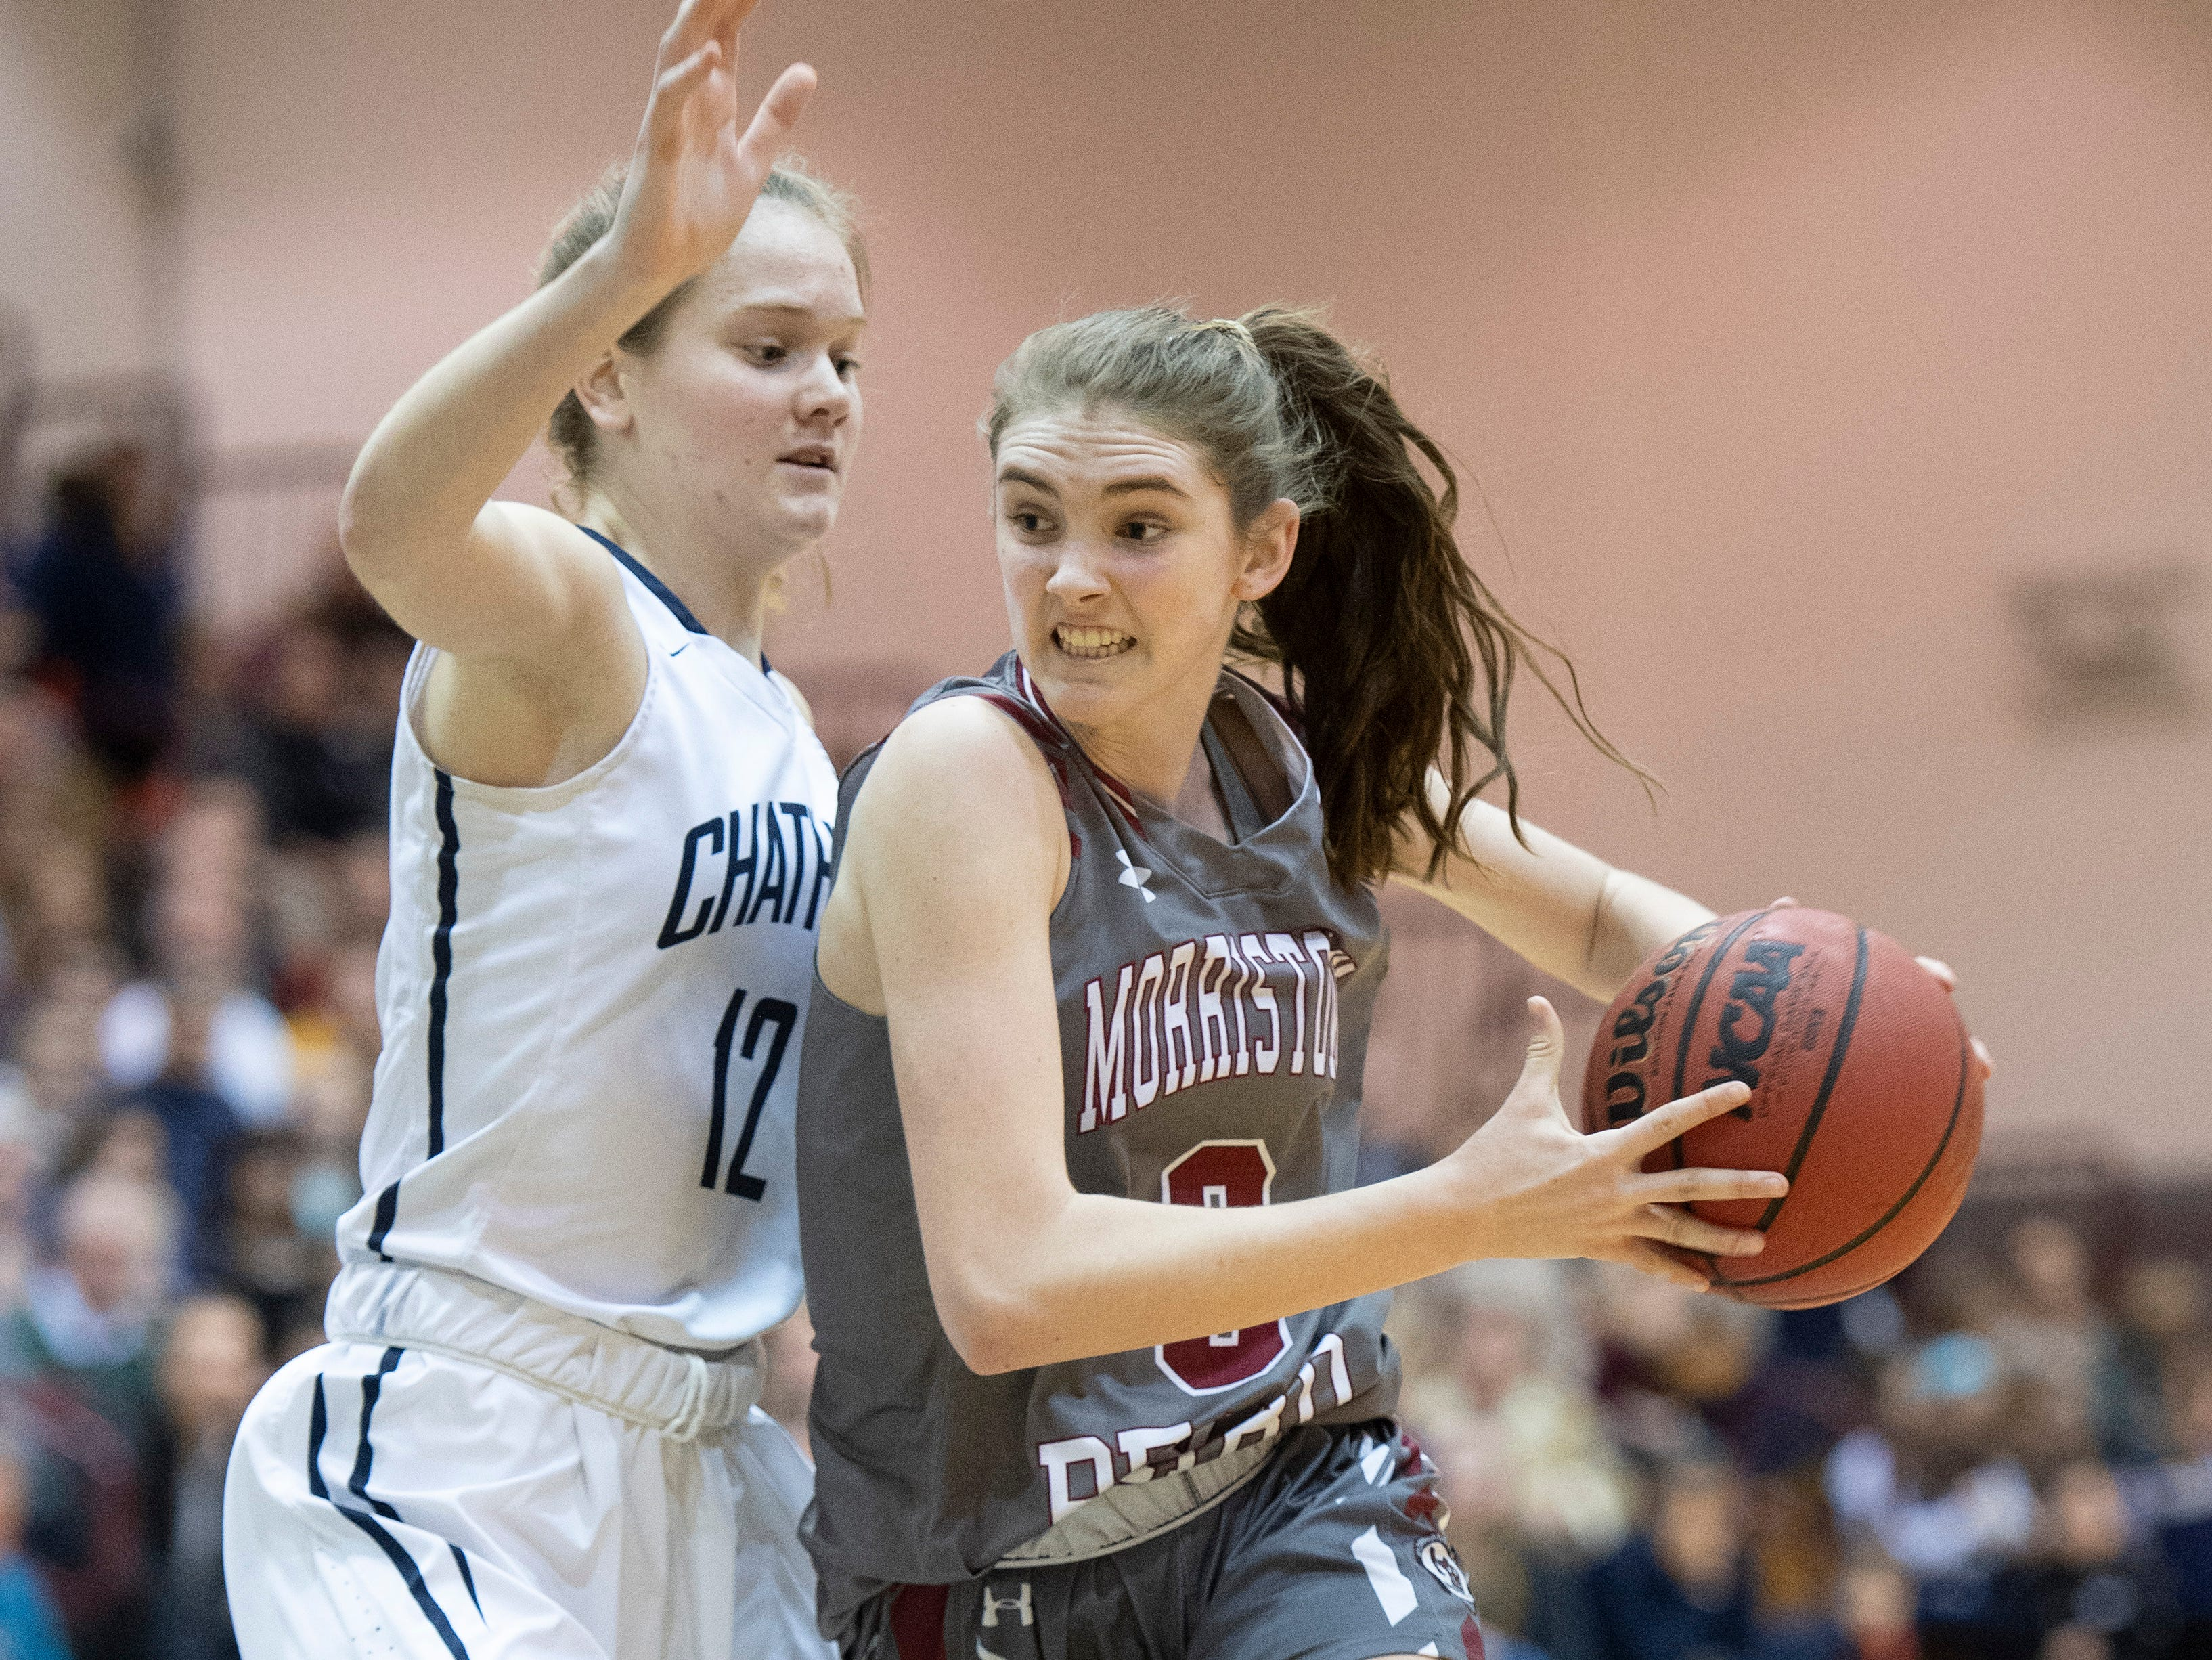 Chatham vs. Morristown-Beard in the Morris County Tournament girls basketball final at the County College of Morris in Randolph on Friday, February 22, 2019. MB #3 Erin Martin drives to the basket as C #12 Carly Frohnapfel defends.